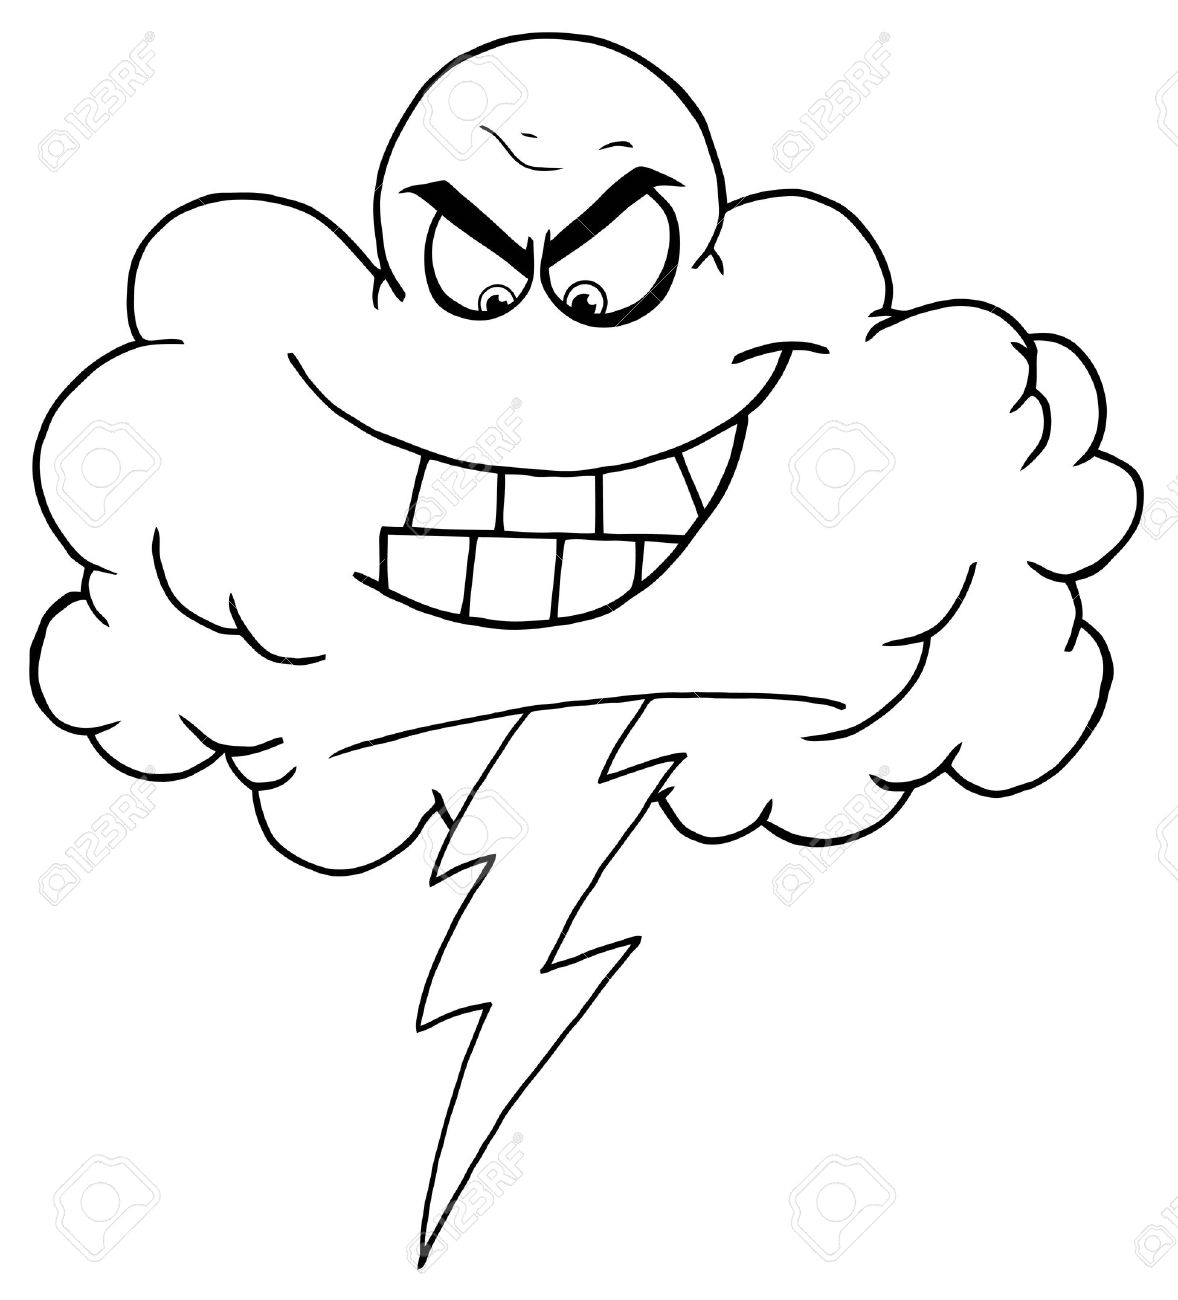 Outline Storm Cloud With Thunderbolt Royalty Free Cliparts